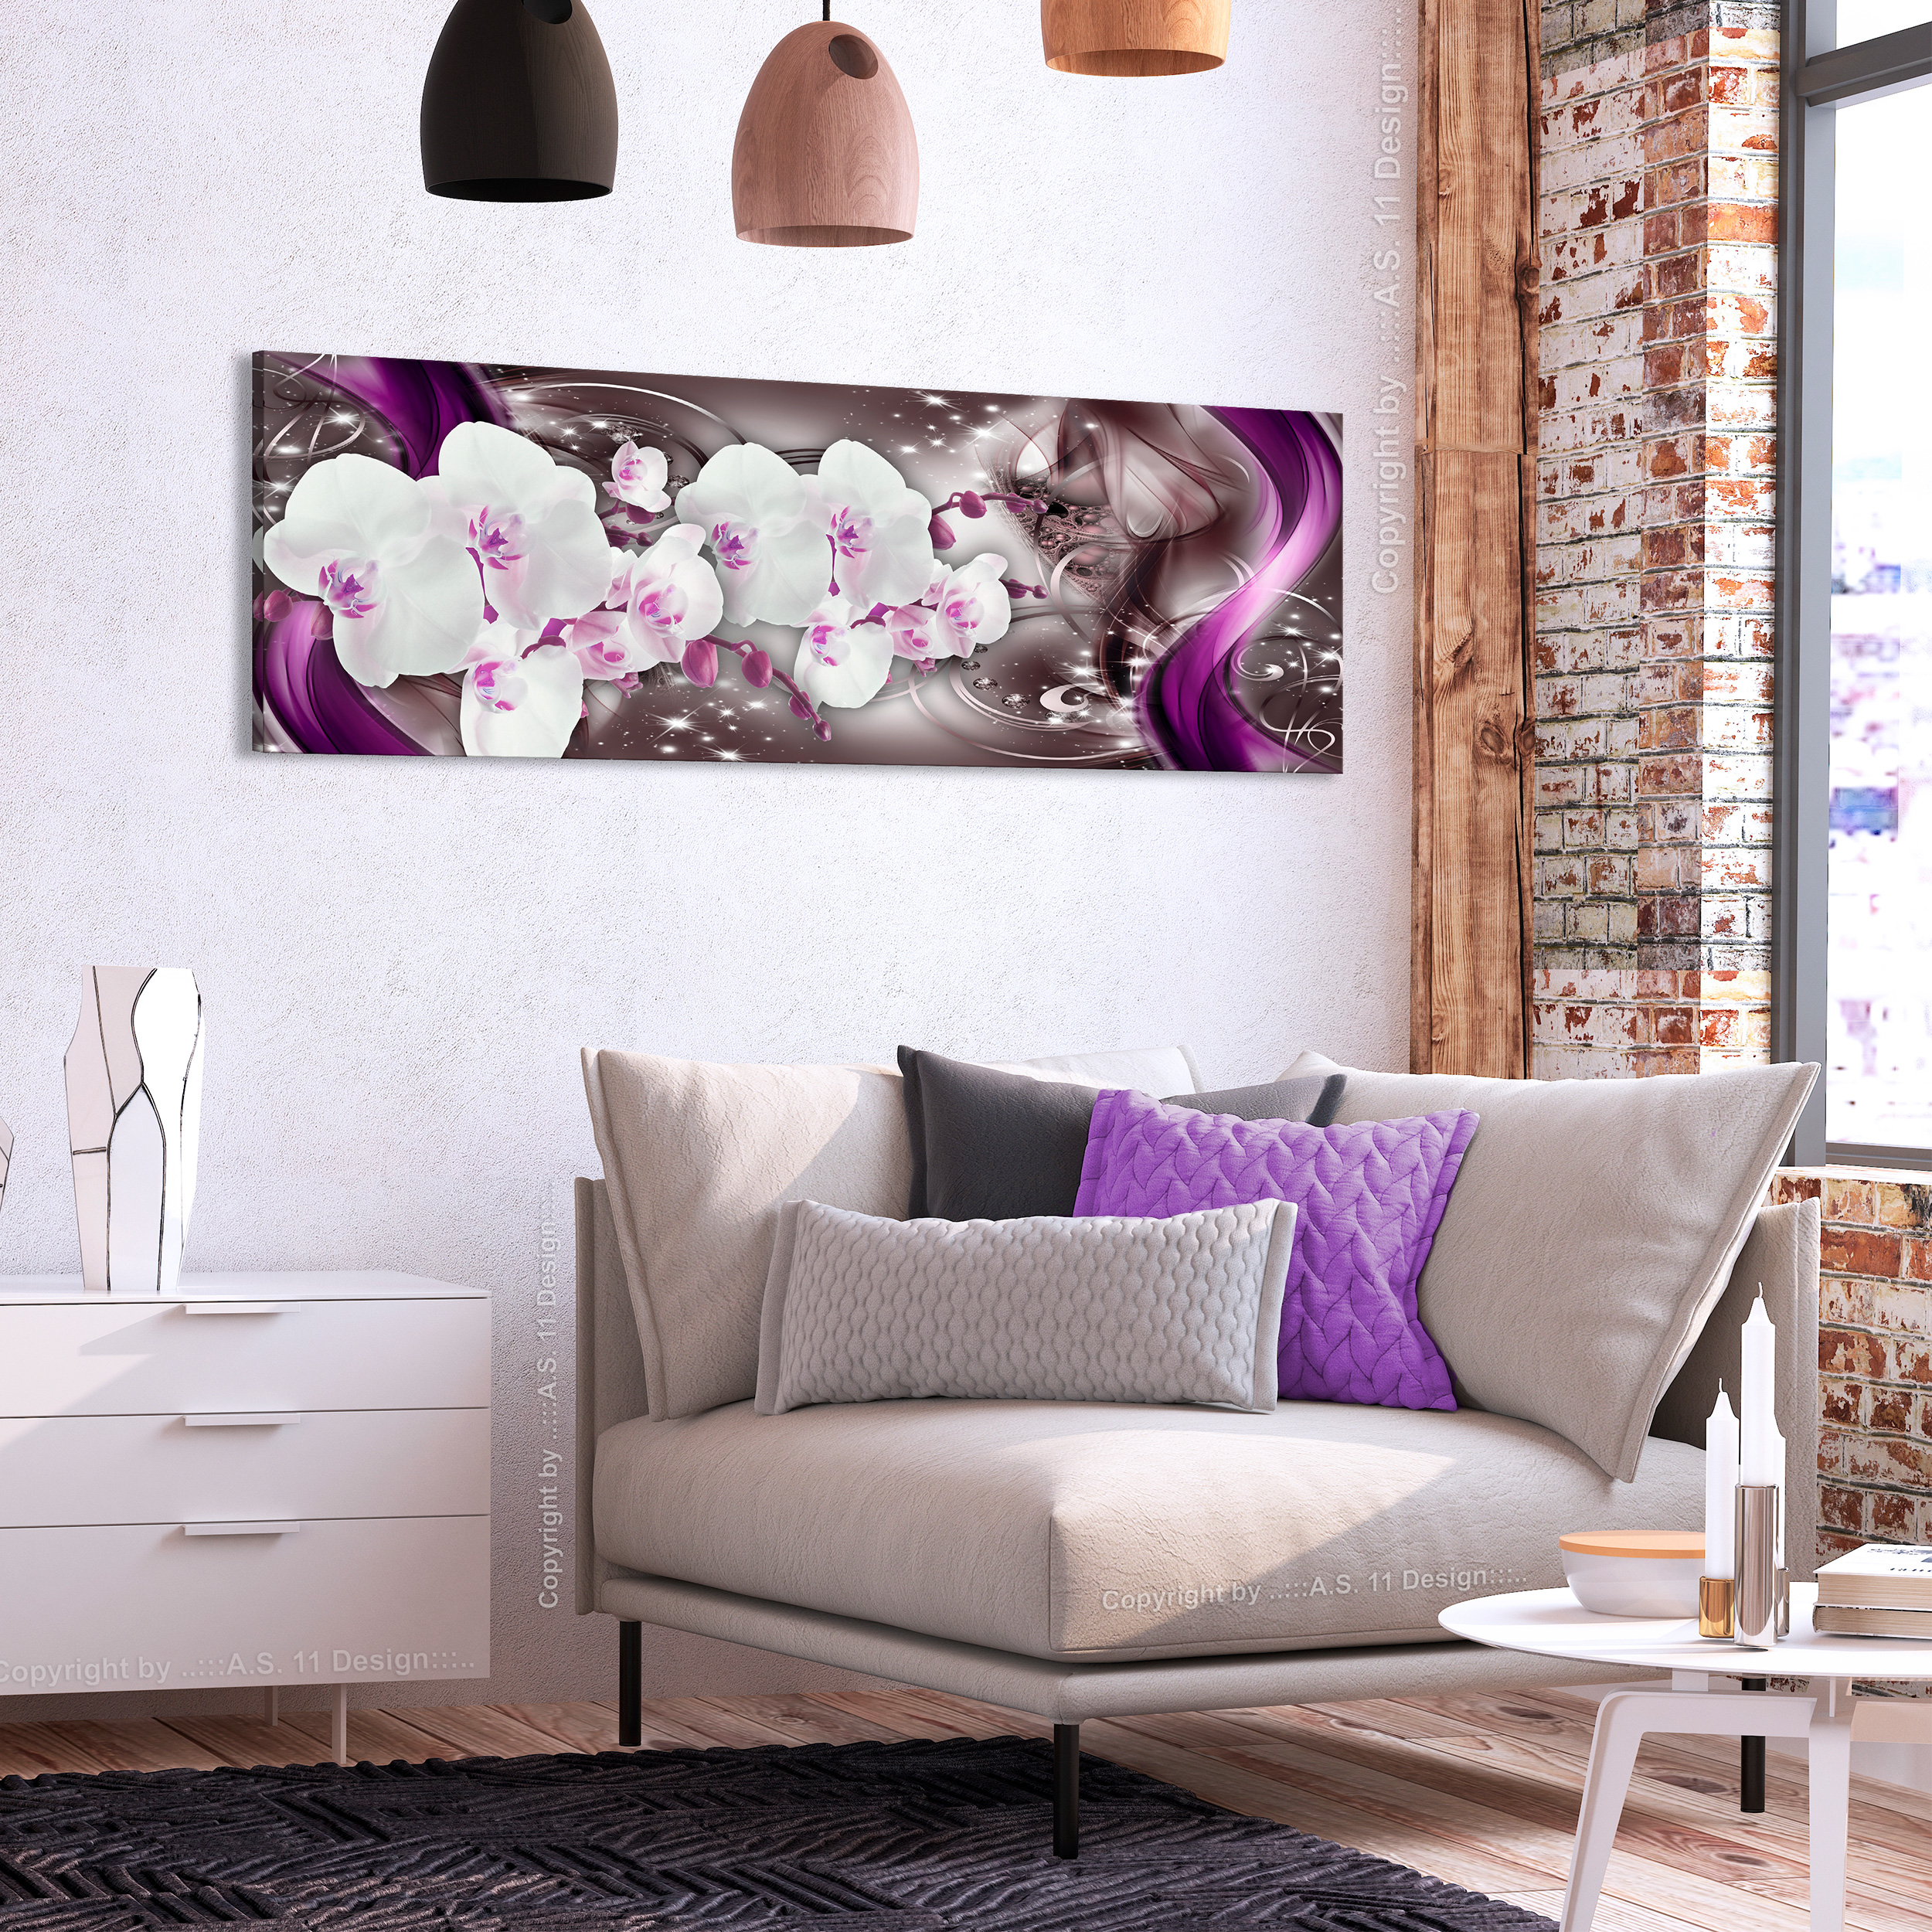 leinwand bilder blumen orchidee abstrakt nachtleuchte wandbilder xxl wohnzimmer ebay. Black Bedroom Furniture Sets. Home Design Ideas